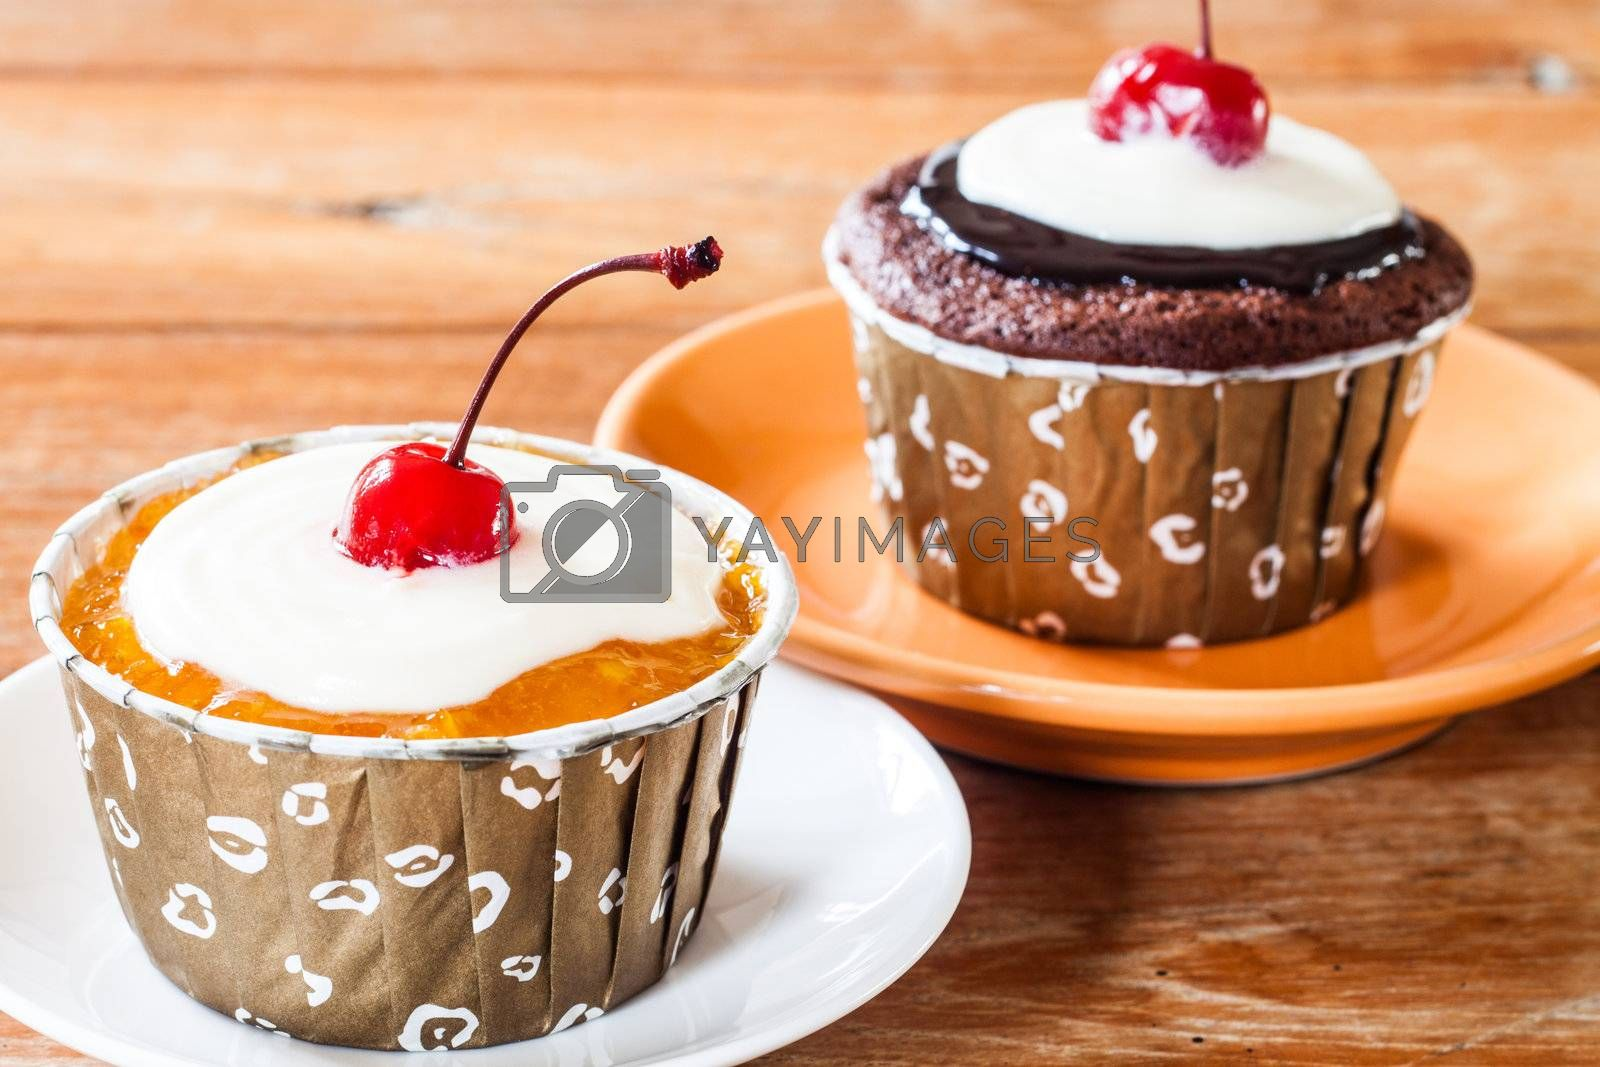 Chocolate and Butter Marmalade Cupcakes decorated with red cherry